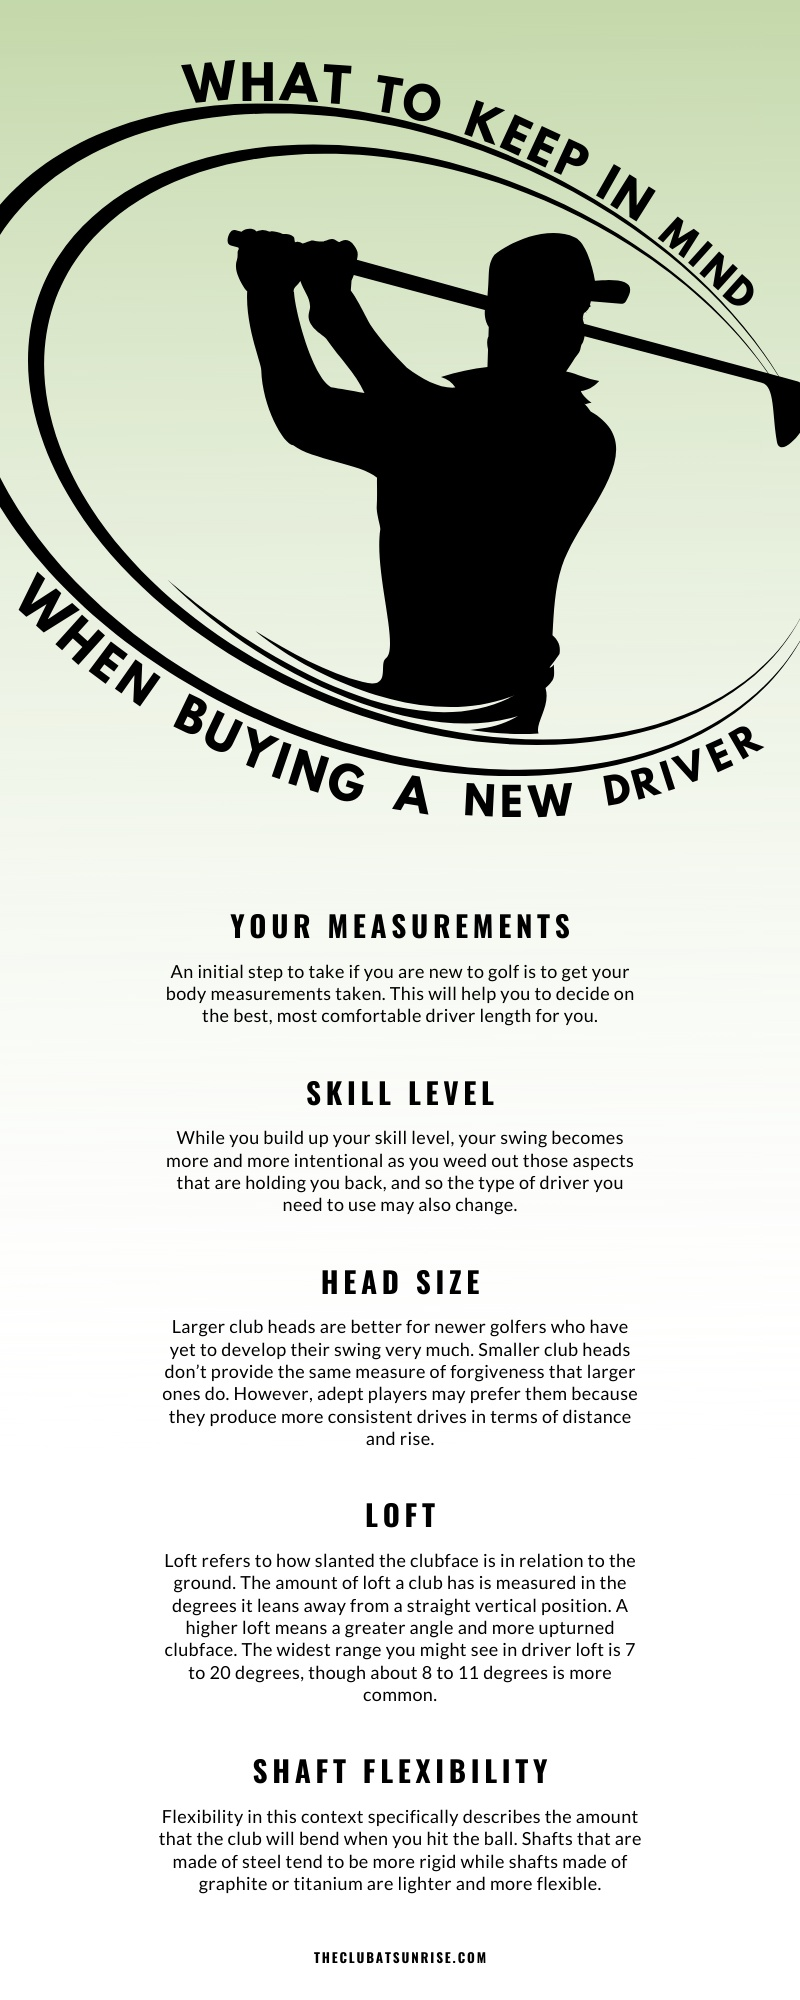 What to Keep in Mind When Buying a New Driver